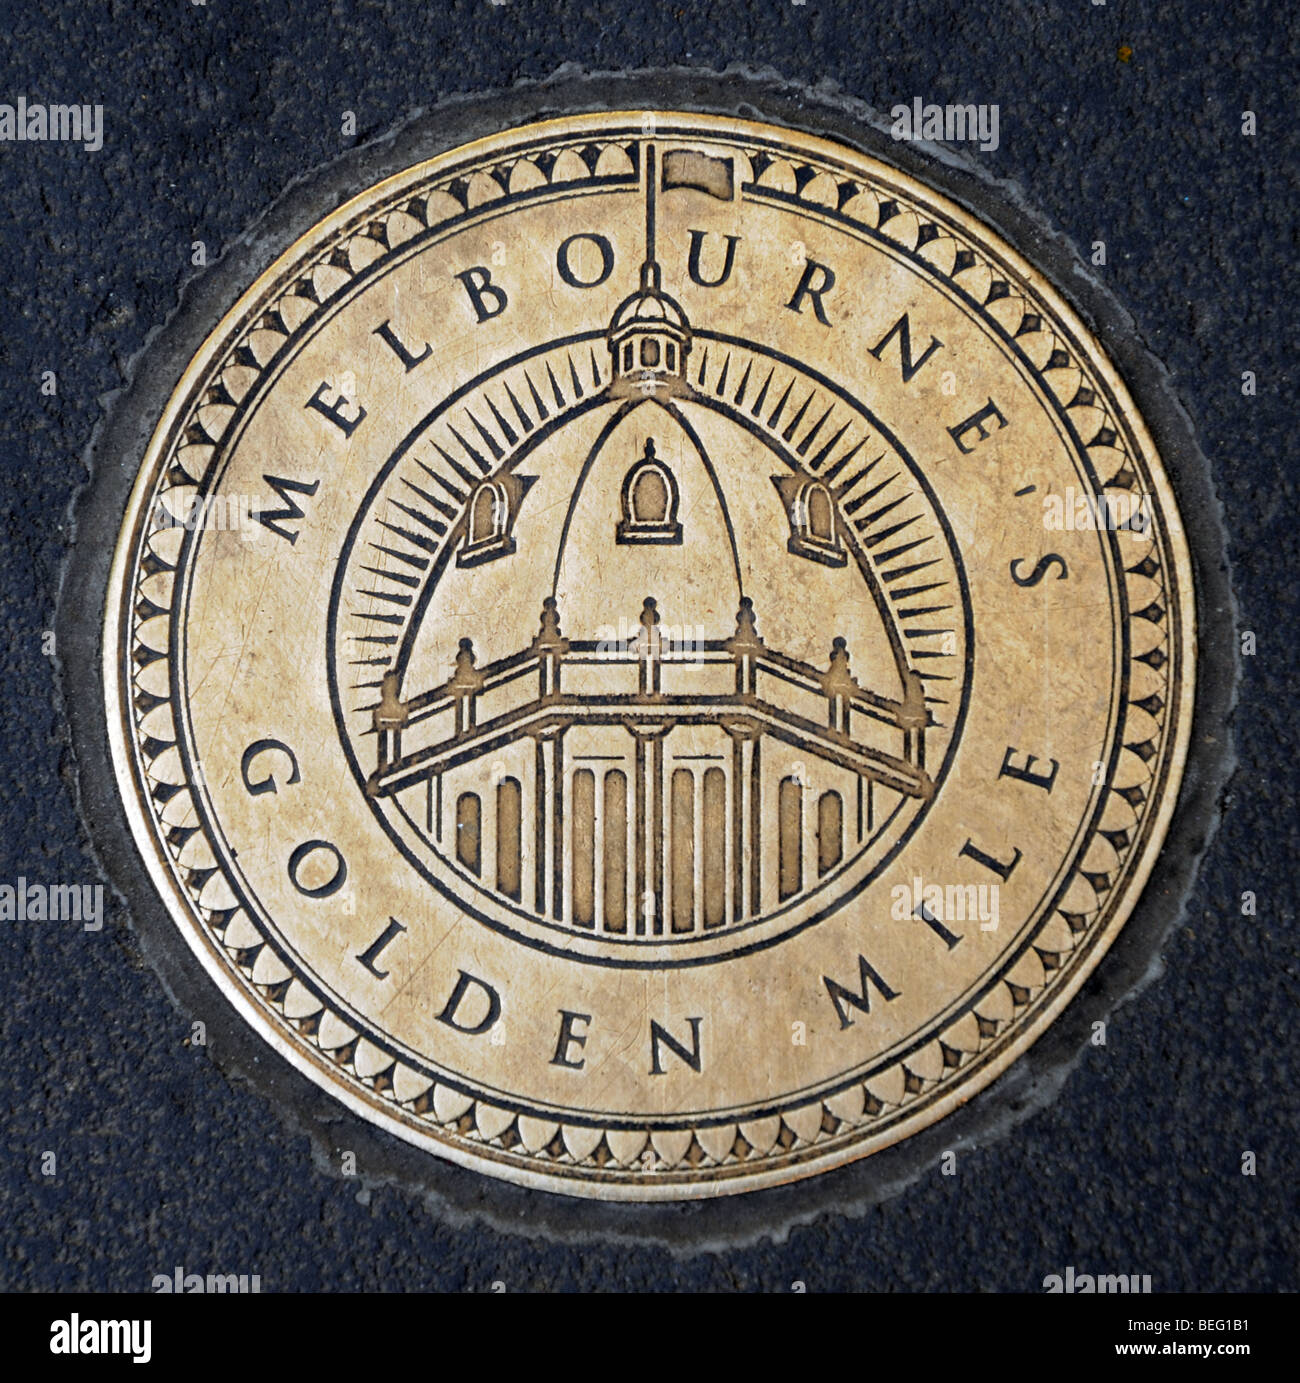 Brass medallion reading Melbourne's Golden Mile with engraving of dome on Flinders Station inset into pavement - Stock Image